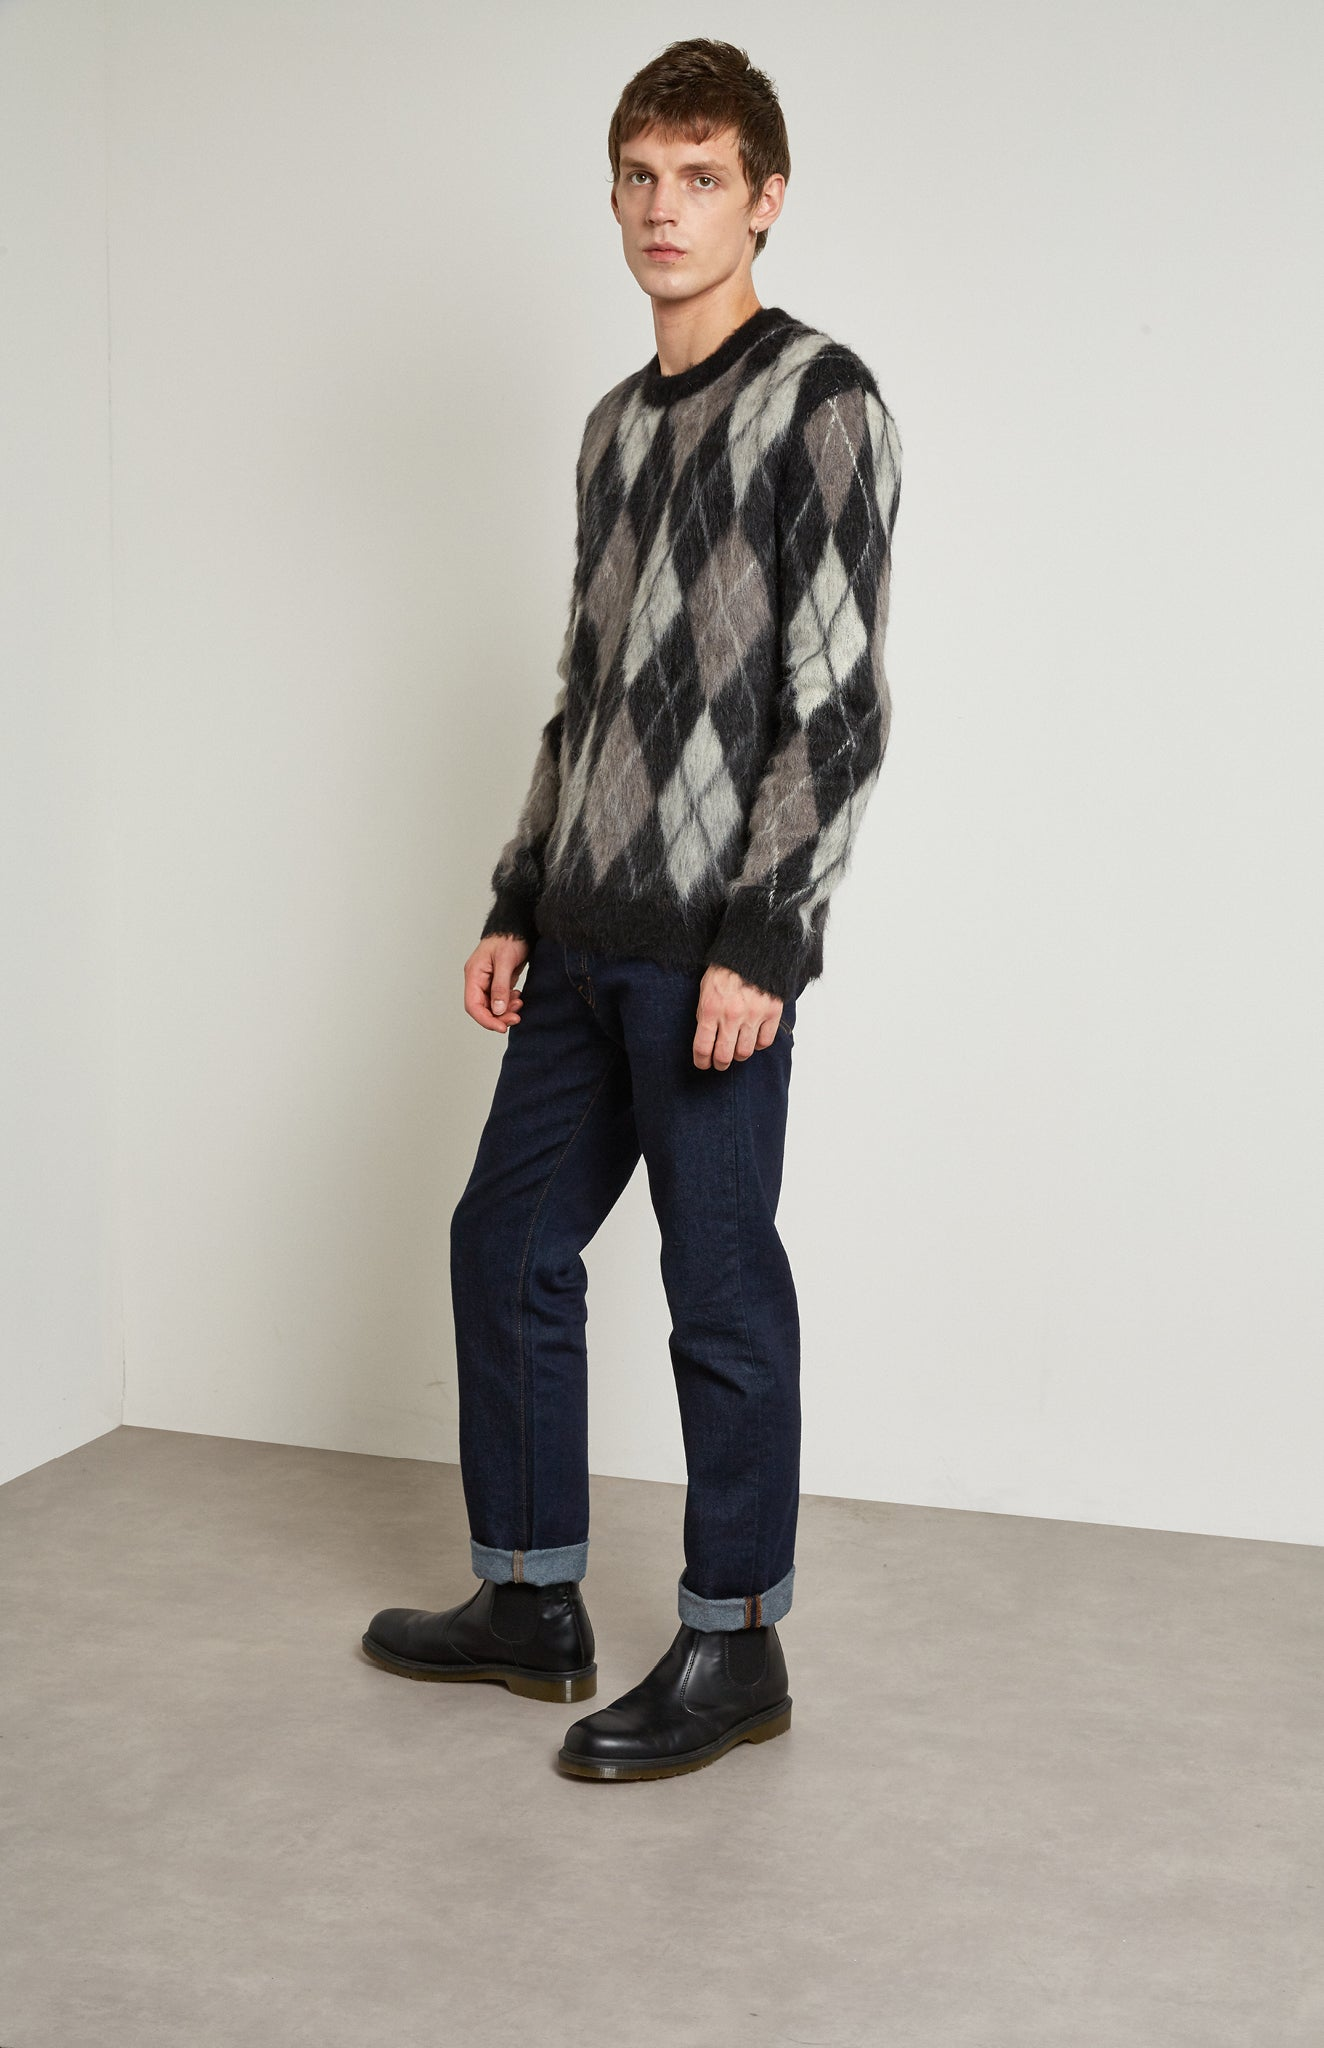 Pringle Reissued Unisex Monochrome Argyle Jumper on male model